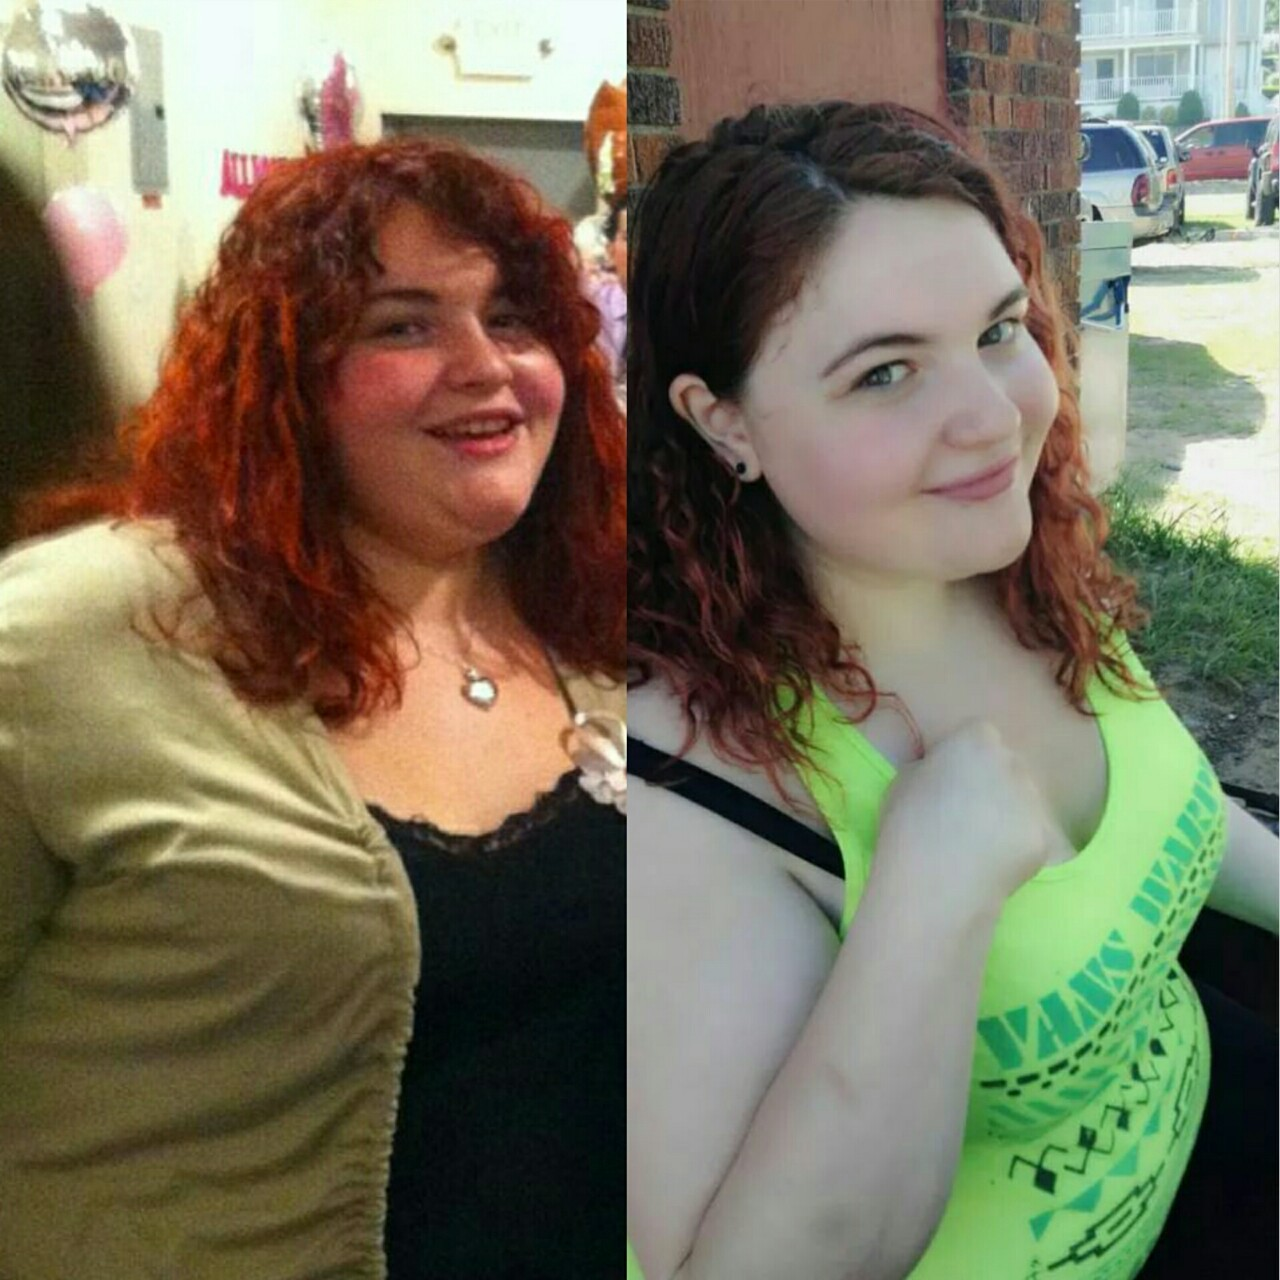 Lost over 30 pounds